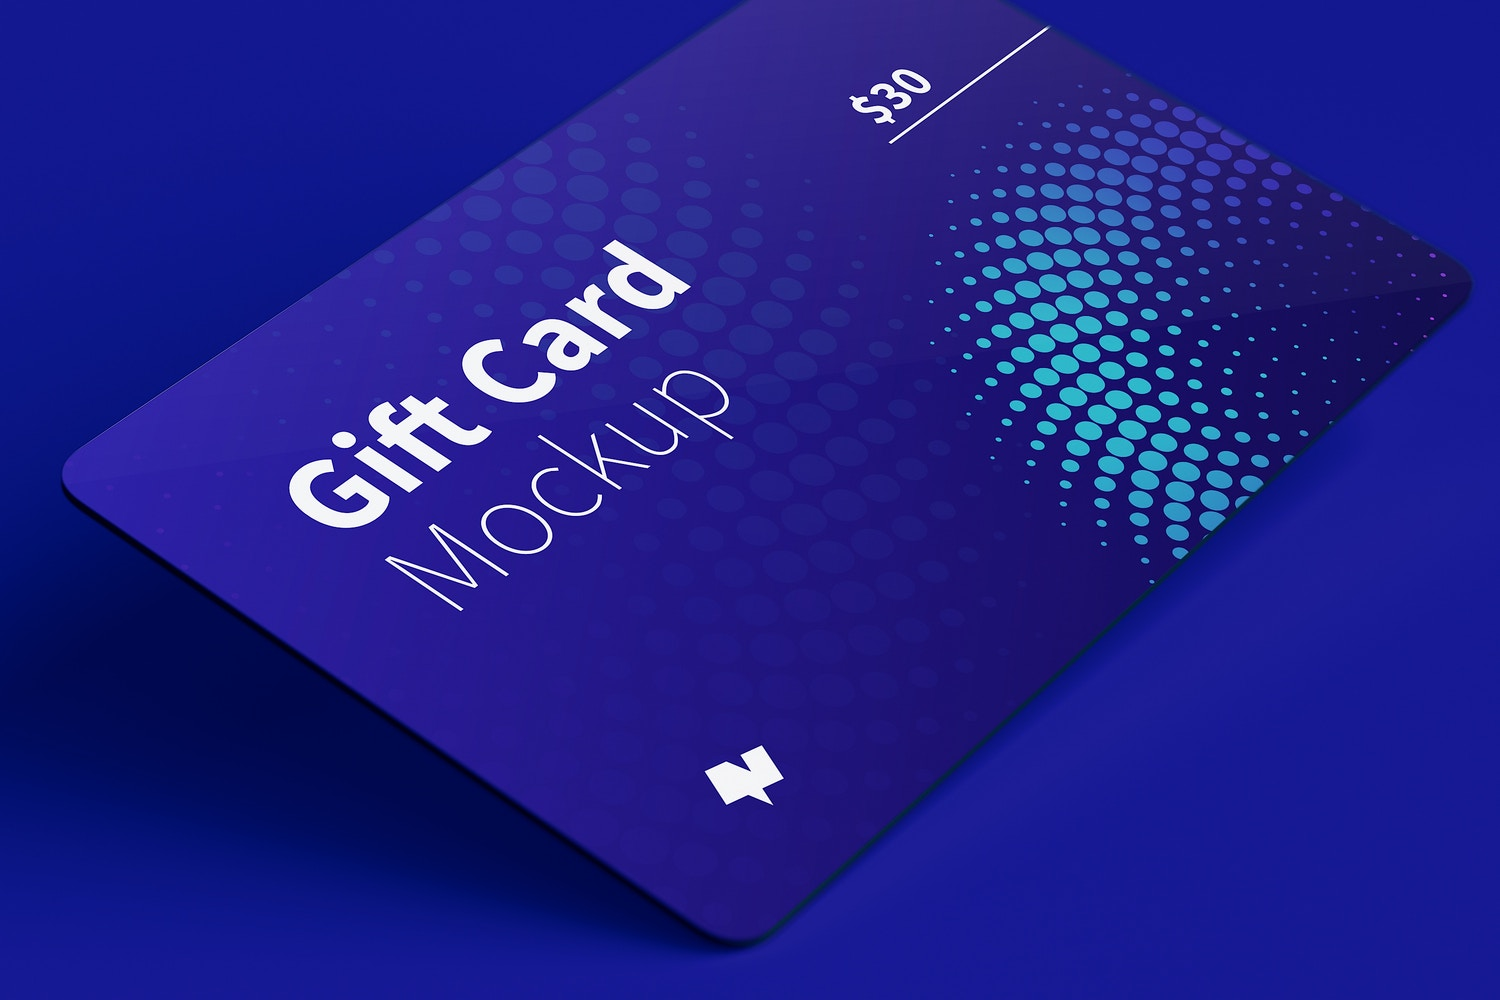 Gift Card Mockup 07 (5) by Original Mockups on Original Mockups